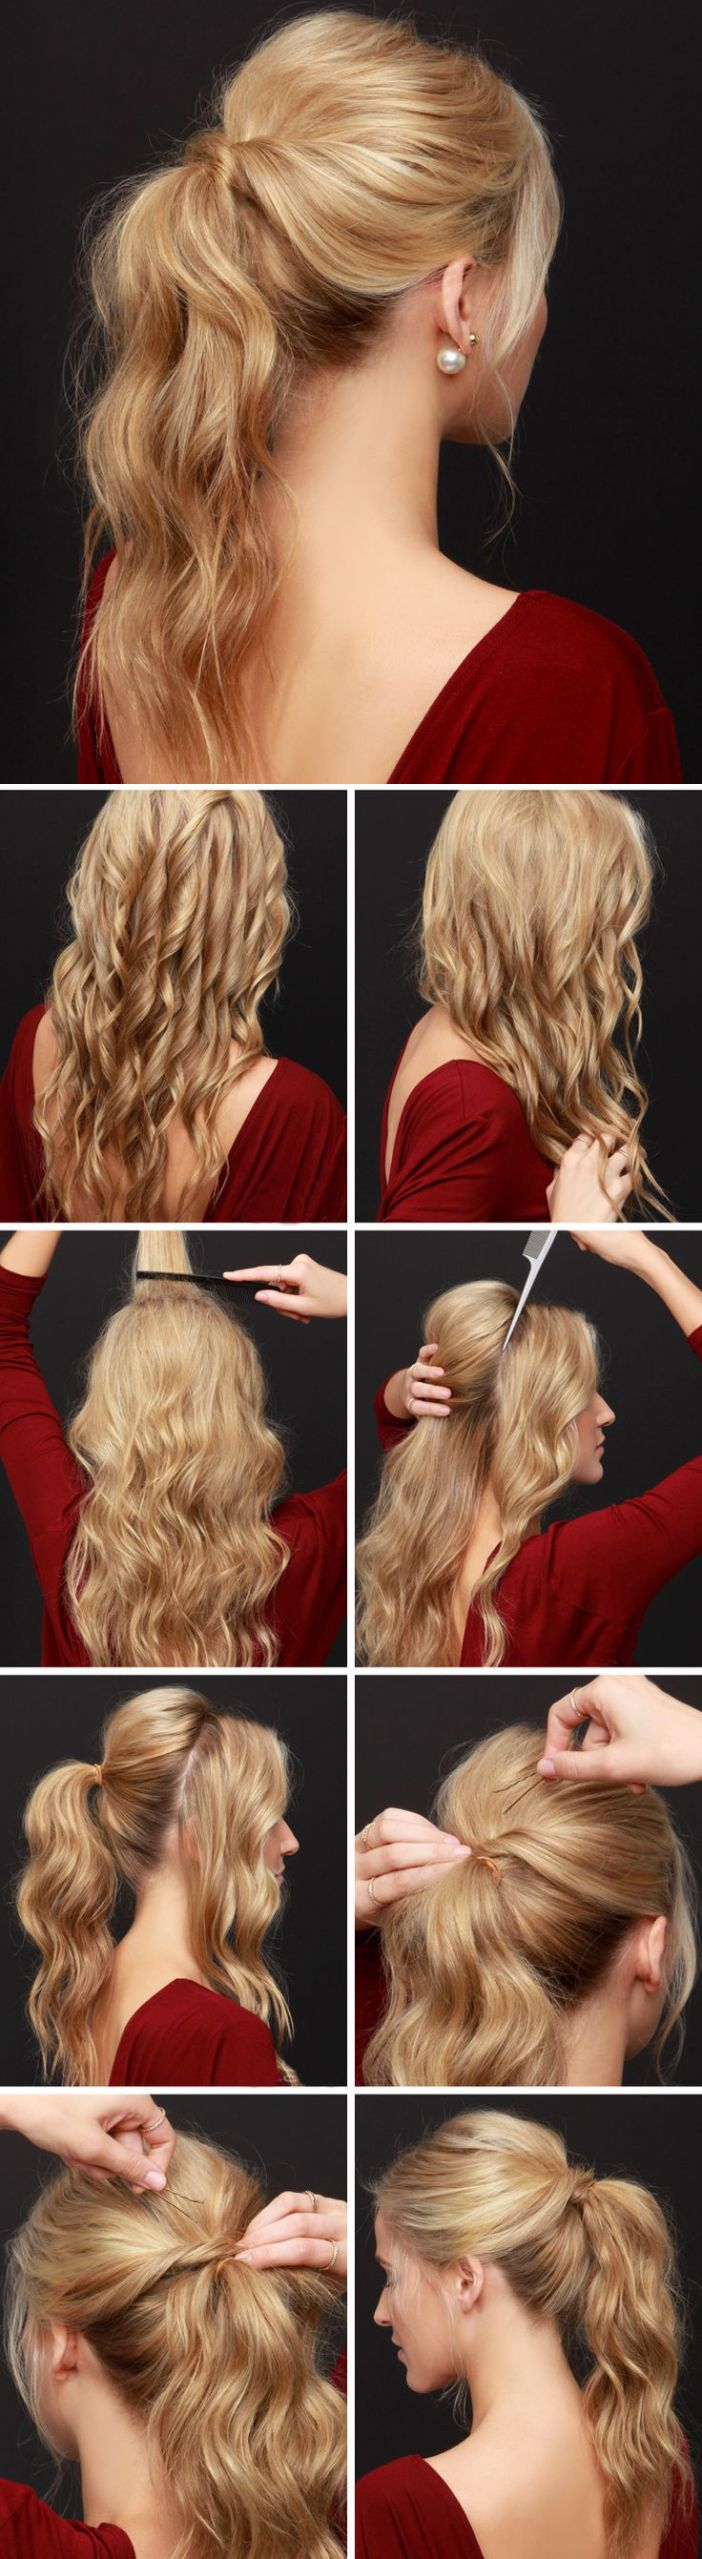 A preparation for party requires a lot of time and sources, especially if you want to look amazing. Let's start with the hair:This is a great looking ponytail, which is absolutely appropriate for a dancing night. If your hair is naturally straight, you have to curl it first. Remember to protect your hair with a thermal protector before the curling.Then comb the hair in order to merge the strands together. Give the hair a volume by back-combing it at the roots.Separate two large strands from…